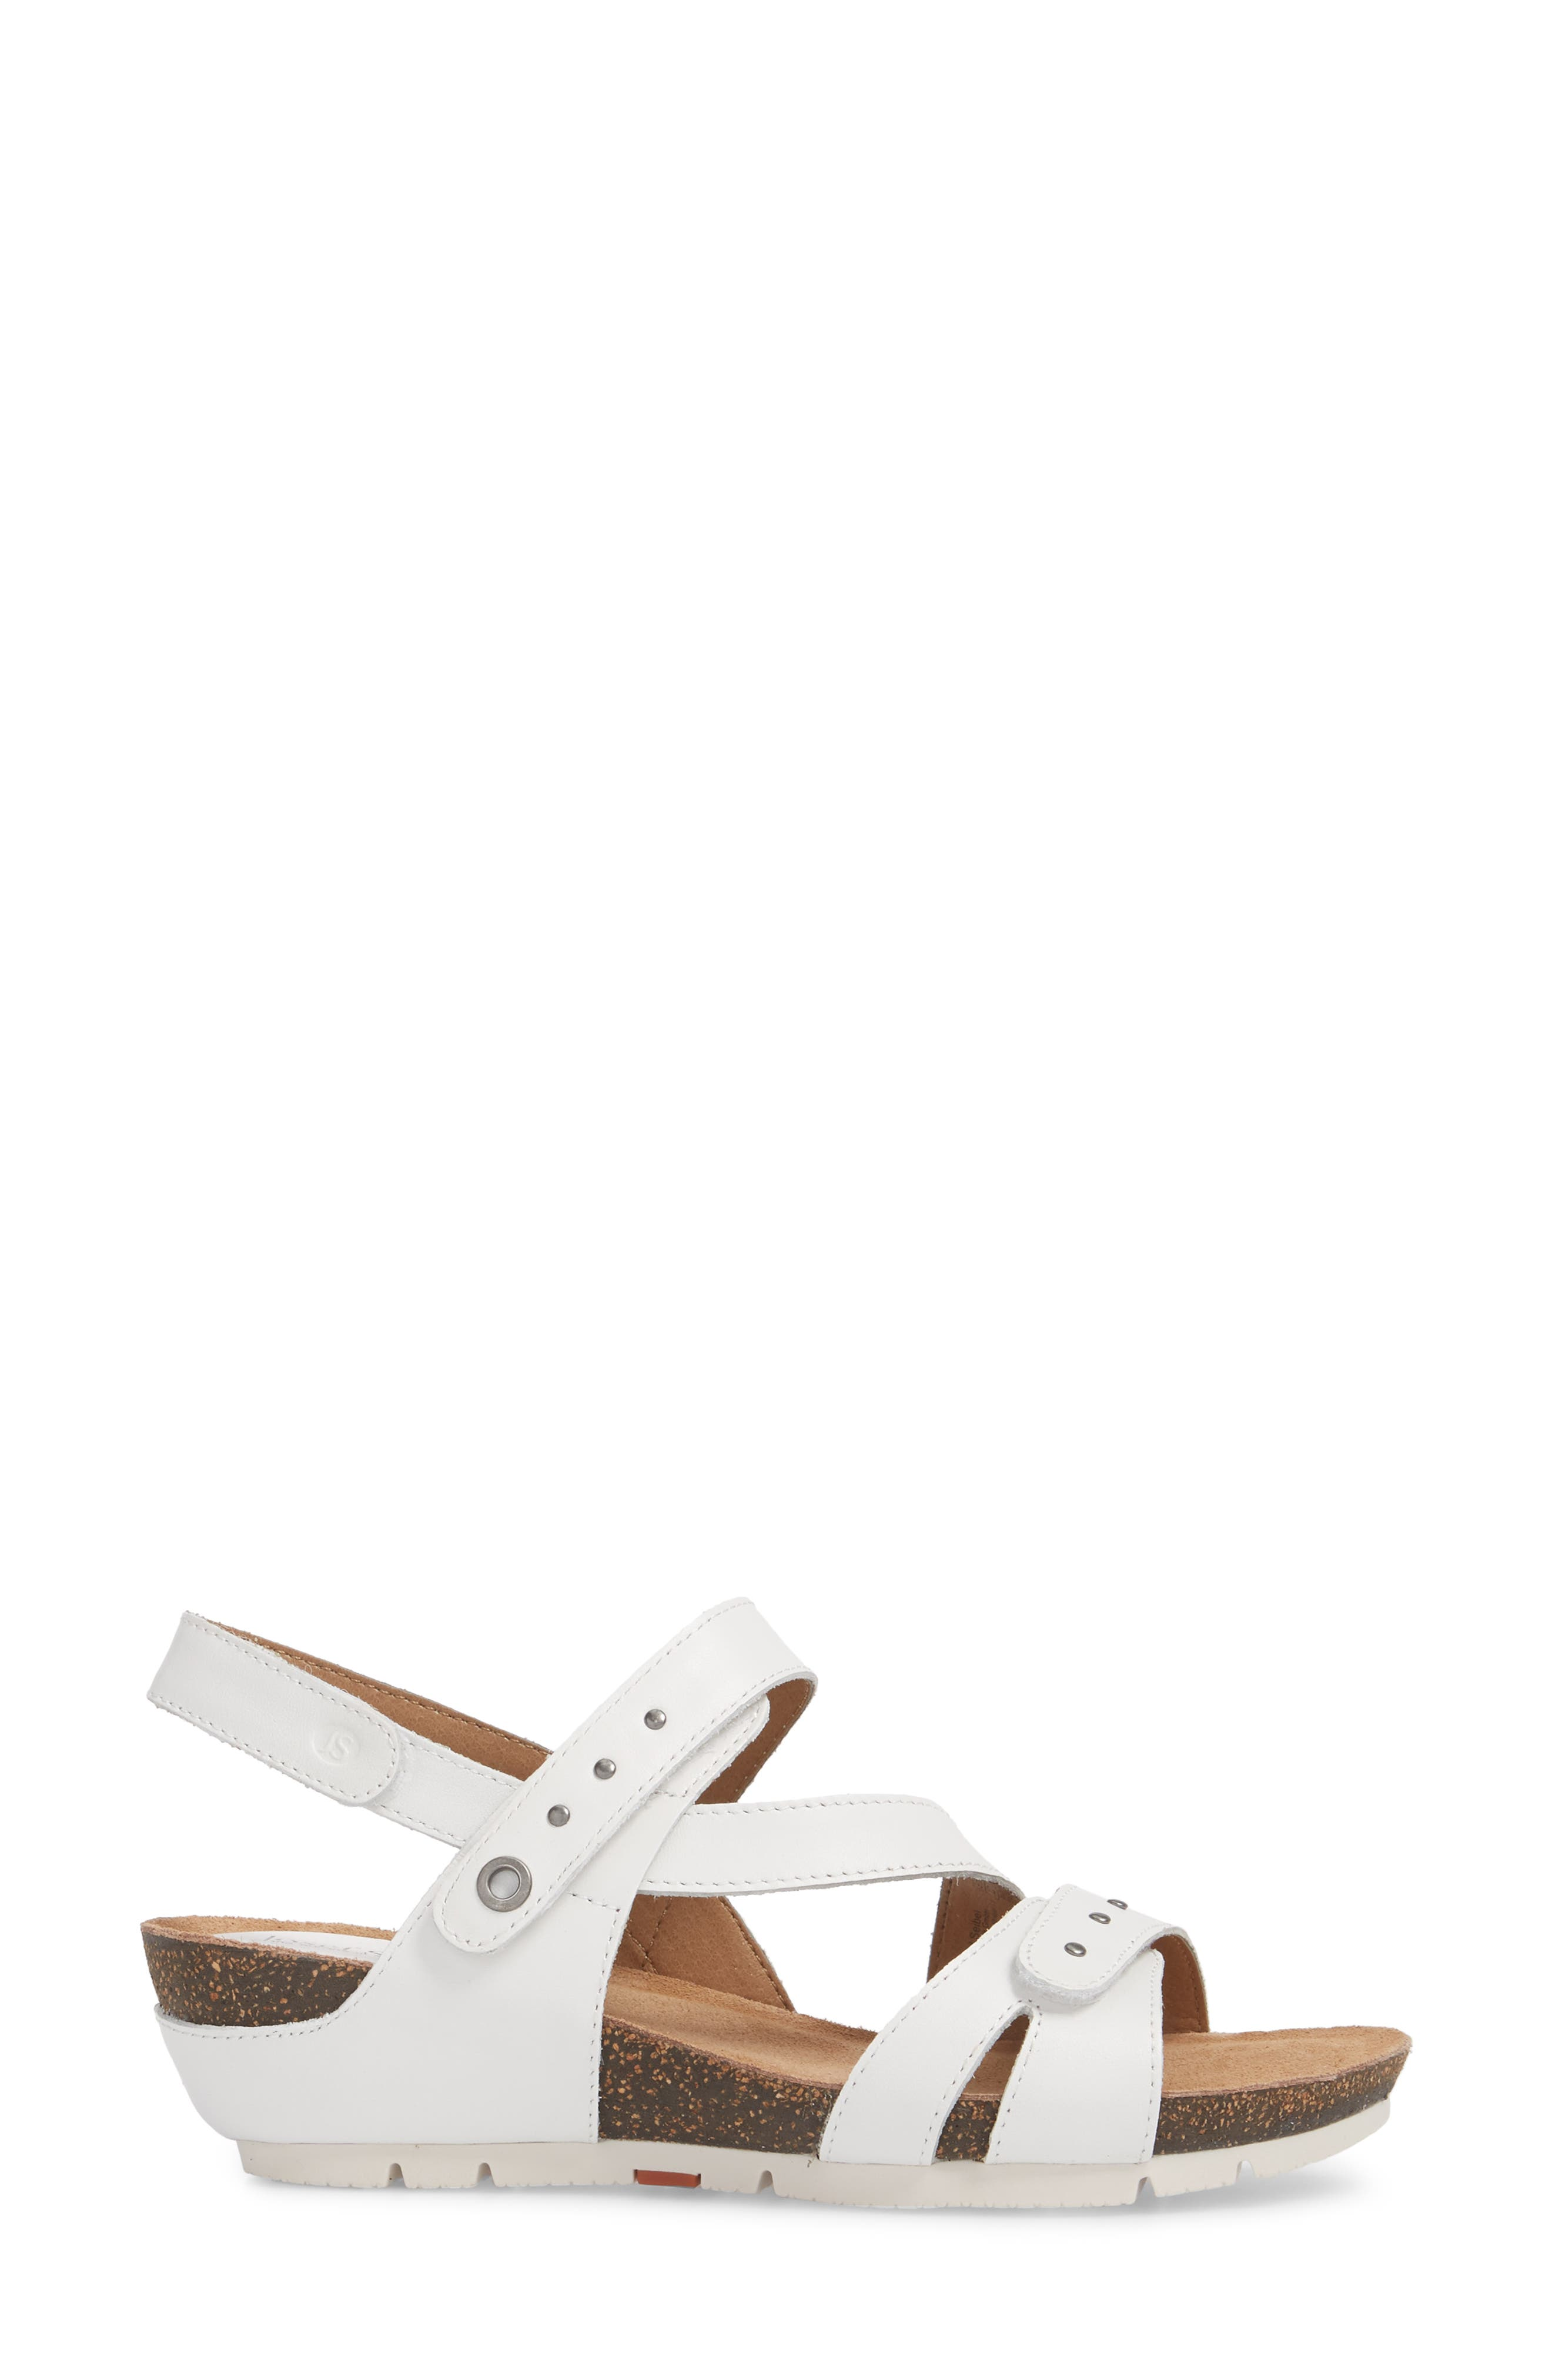 Alternate Image 3  - Josef Seibel Hailey 33 Sandal (Women)